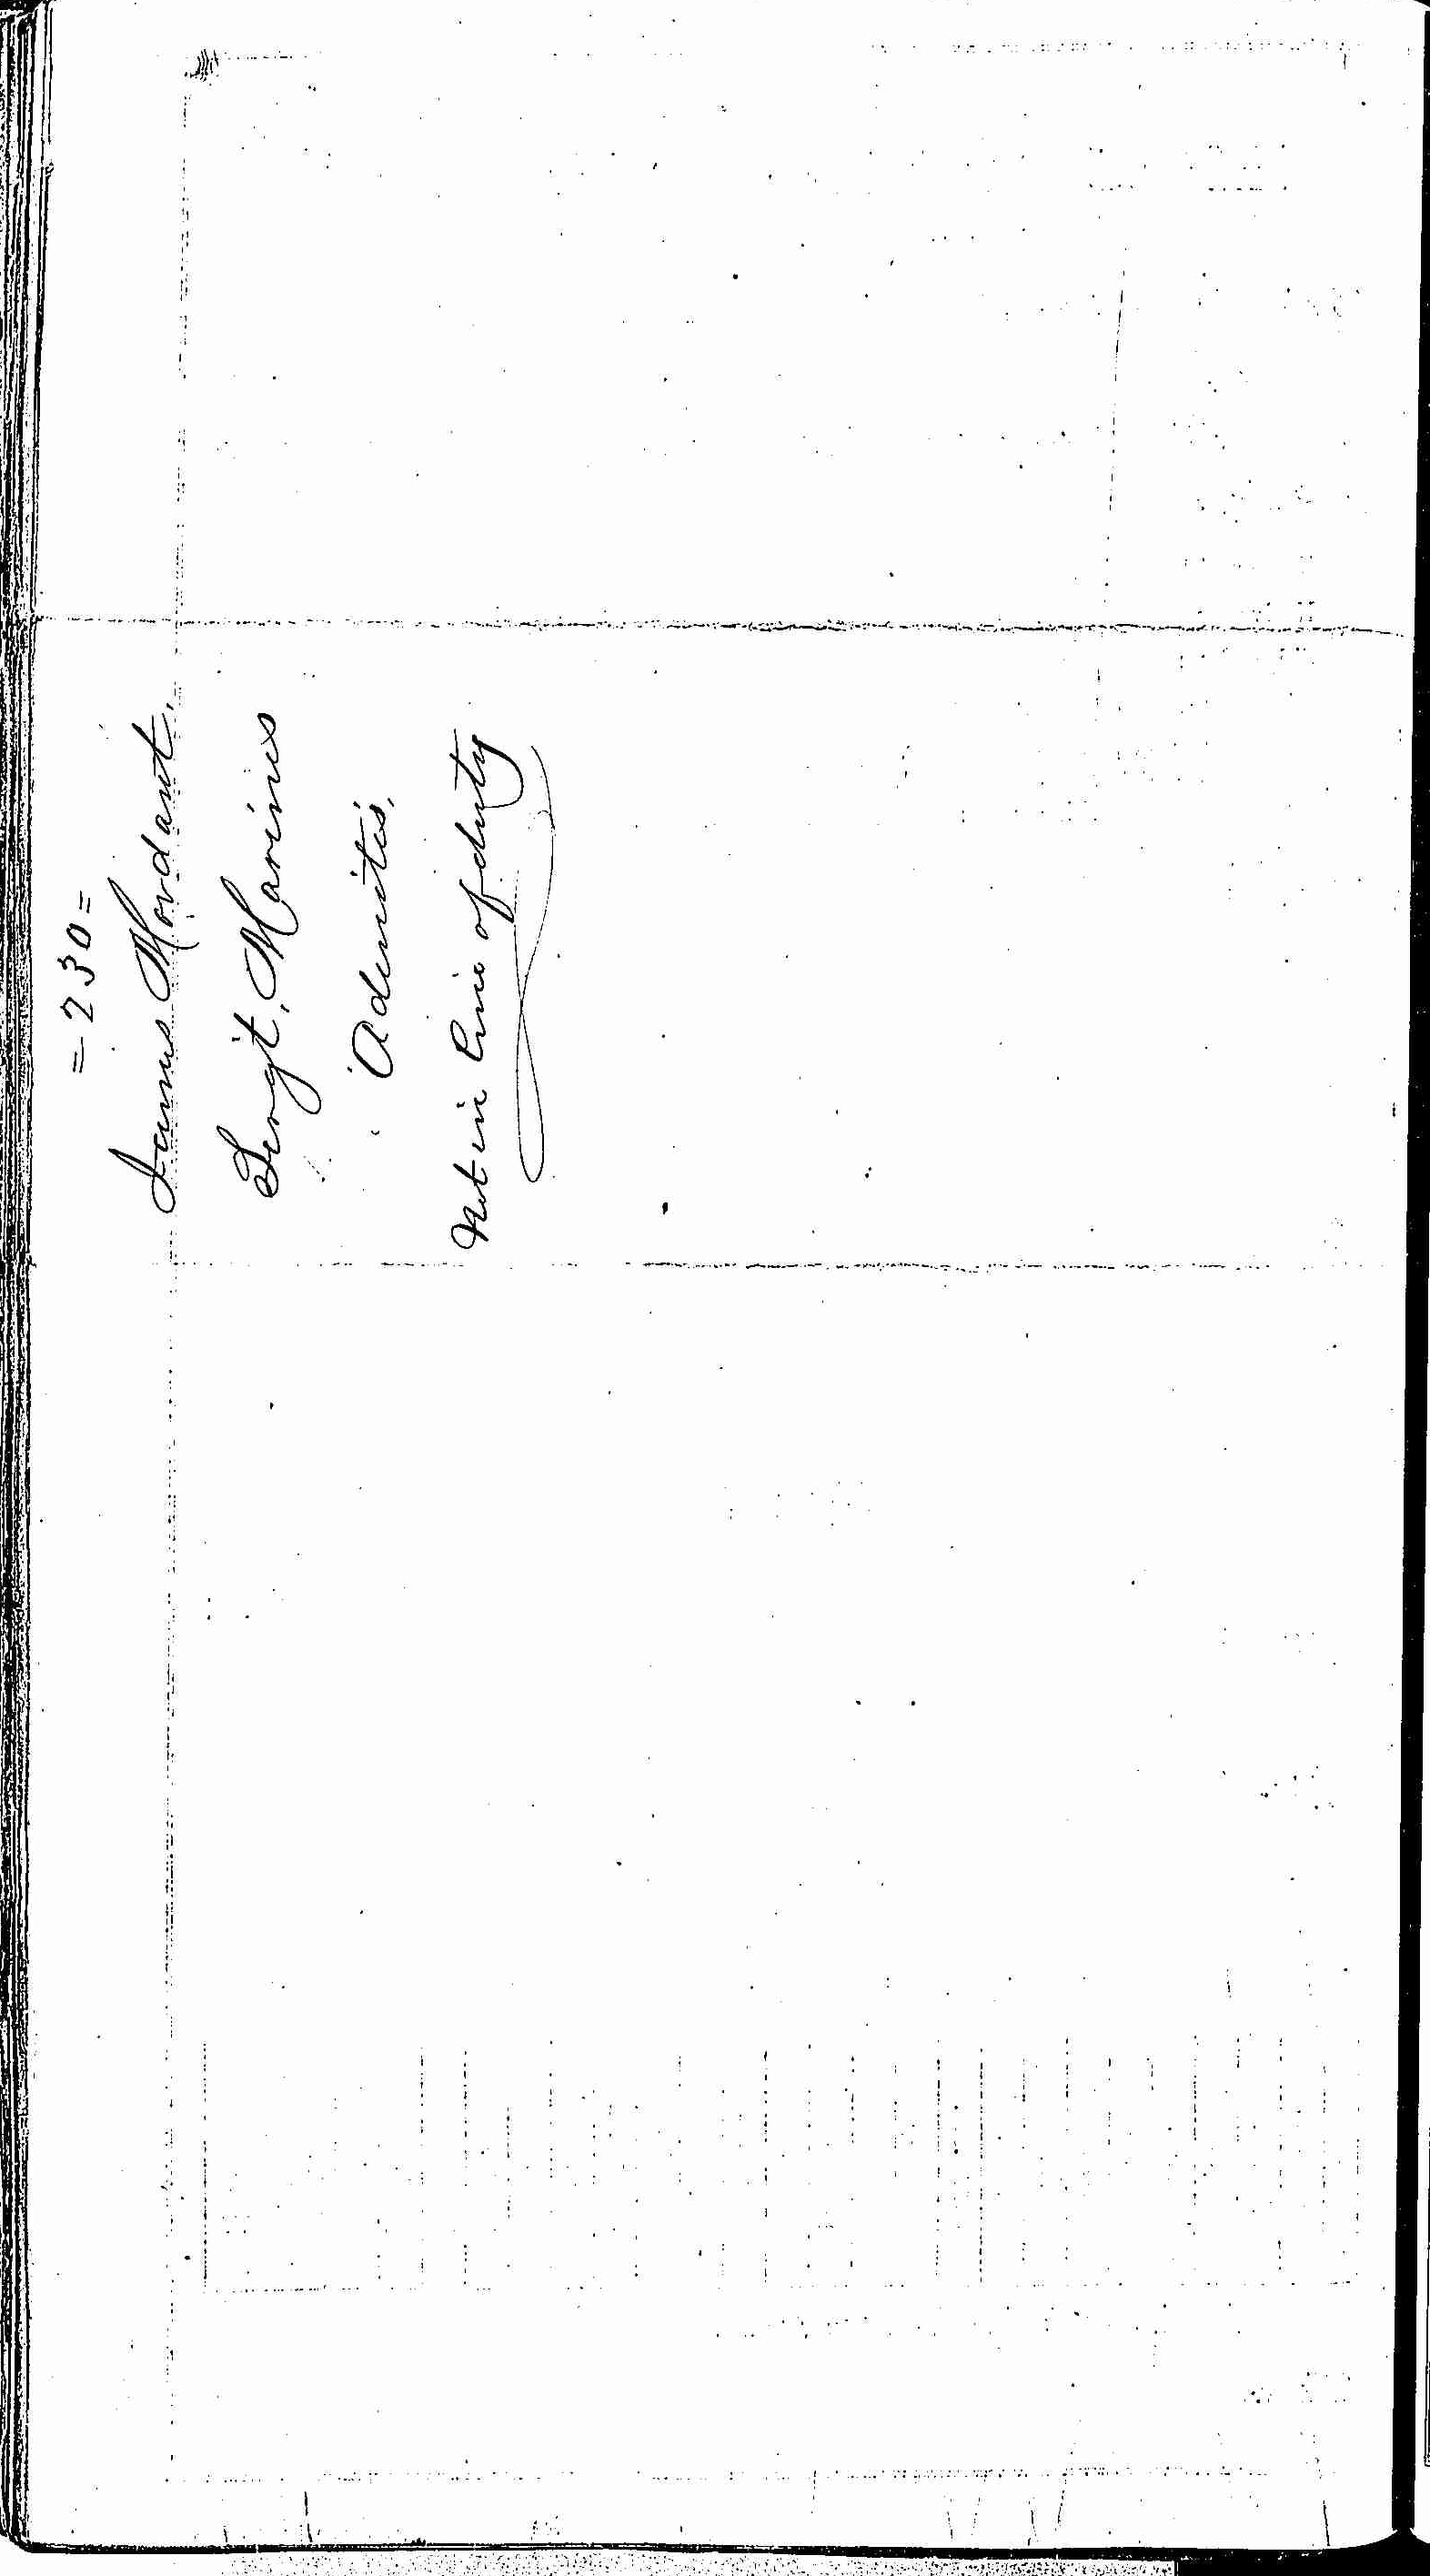 Entry for James Mordaunt (second admission page 2 of 2) in the log Hospital Tickets and Case Papers - Naval Hospital - Washington, D.C. - 1866-68